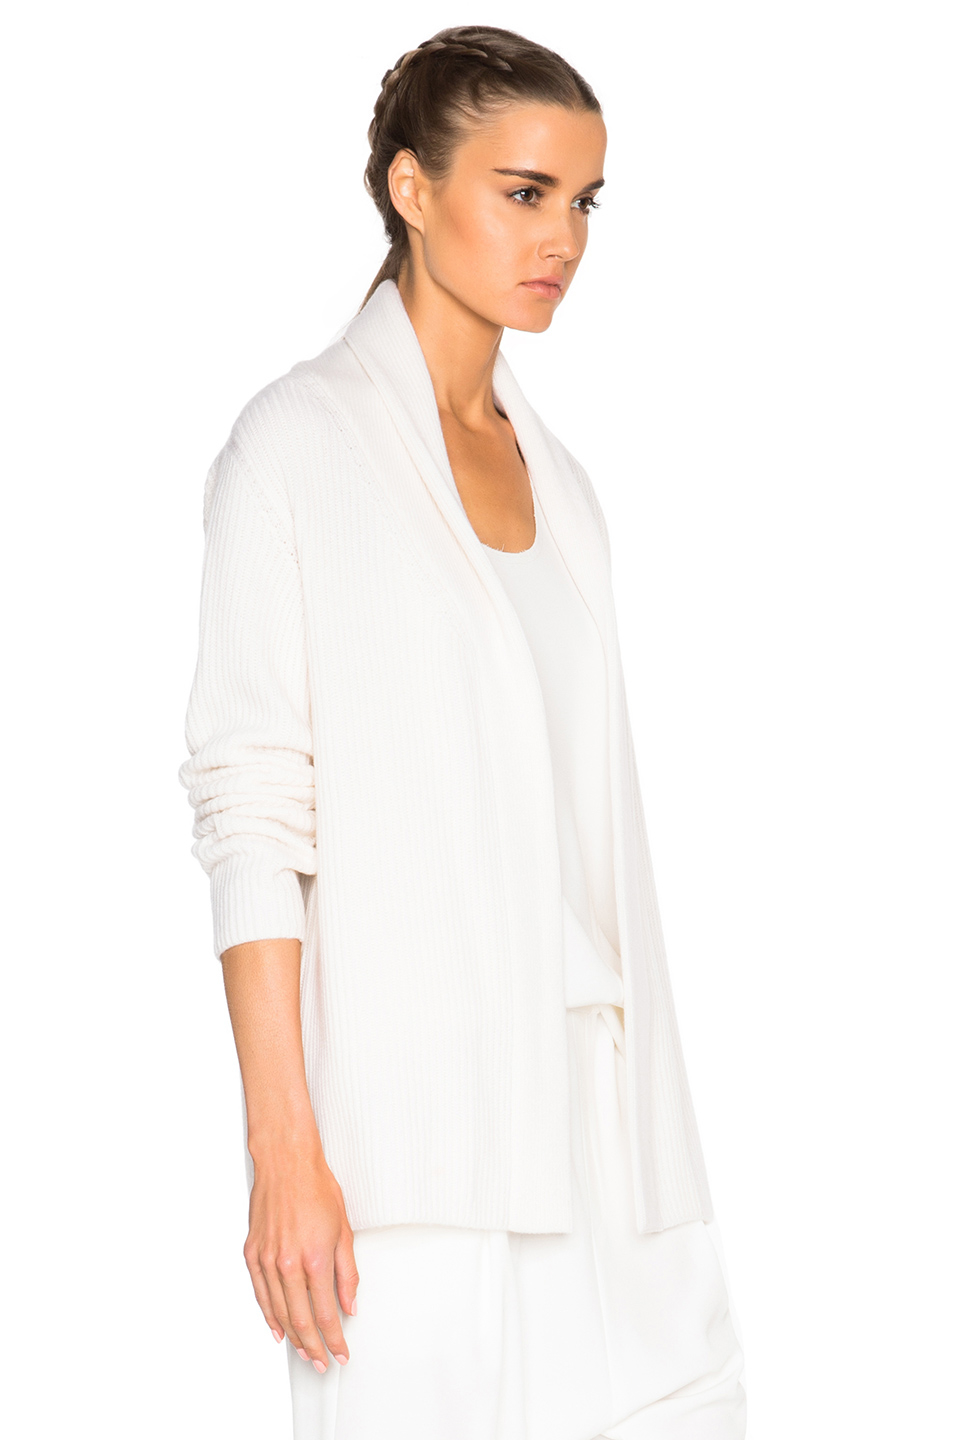 Baja east Cashmere Cardigan Sweater In Pearl in White | Lyst